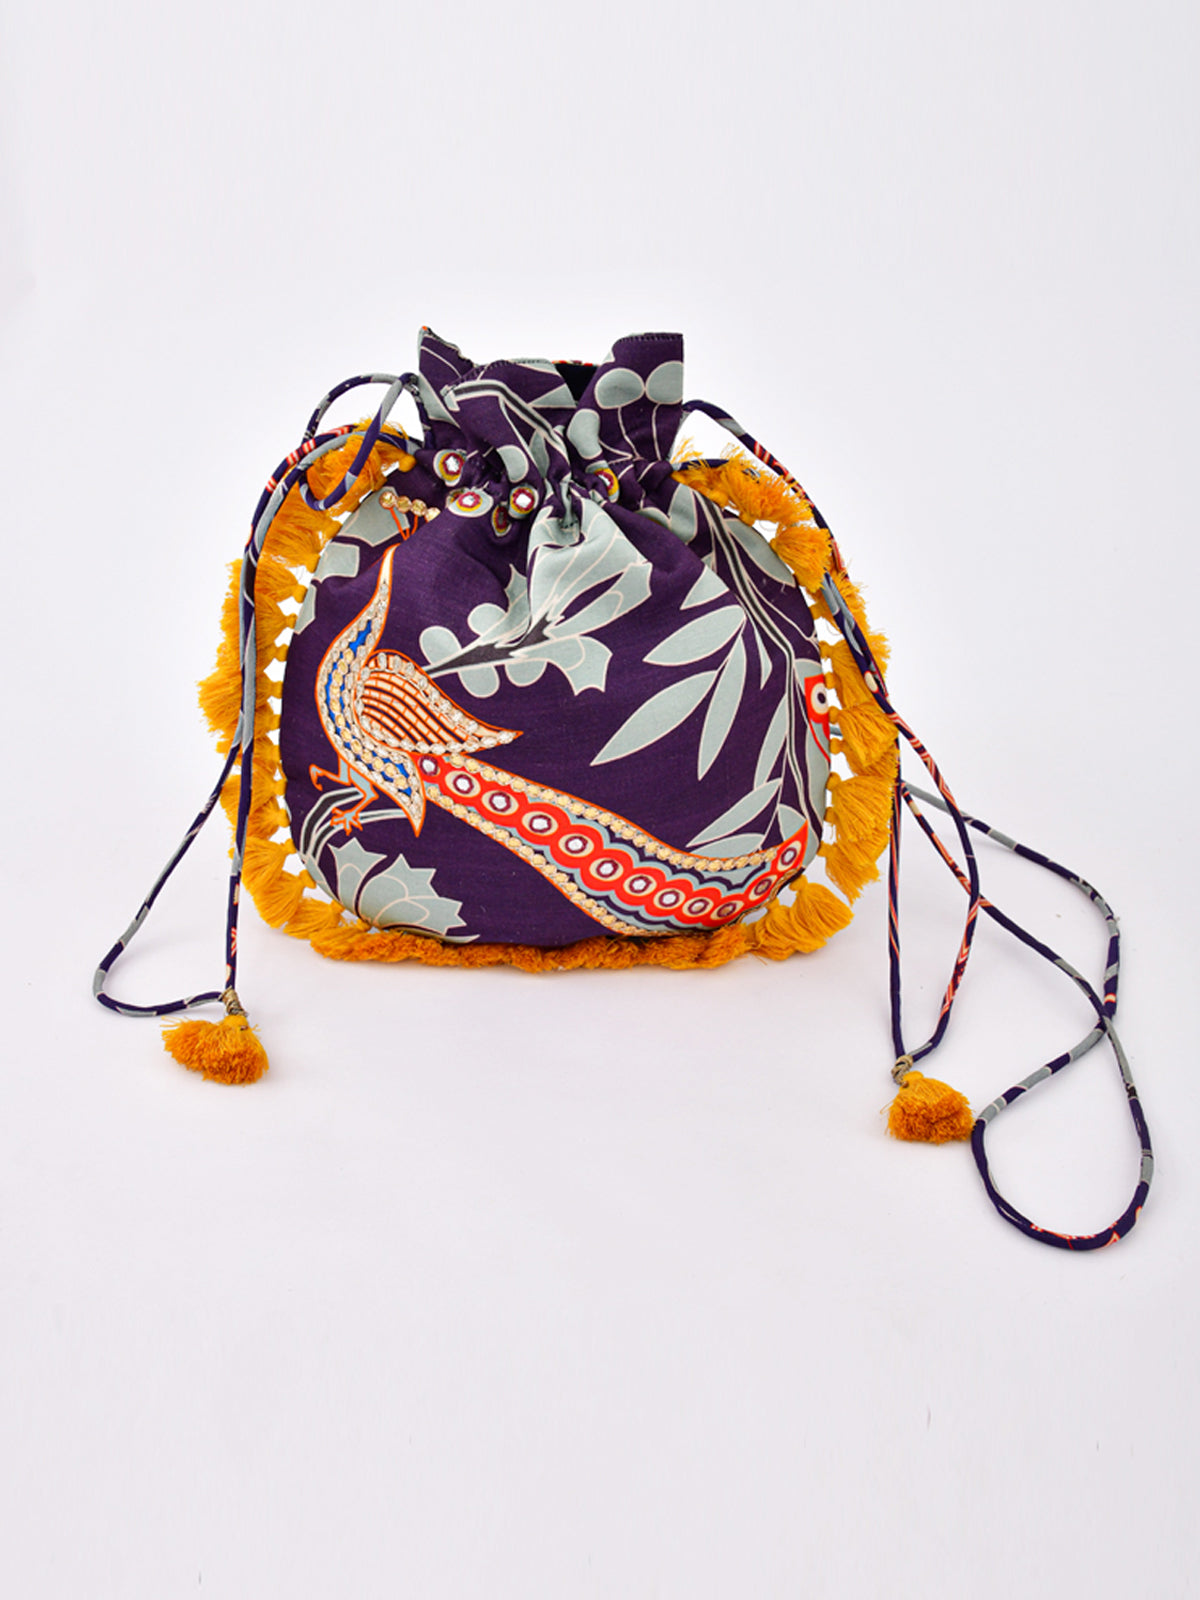 MORBAGH PEACOCK BLUE  EMBRODIED POTLI BAG WITH YELLOW TASSELS